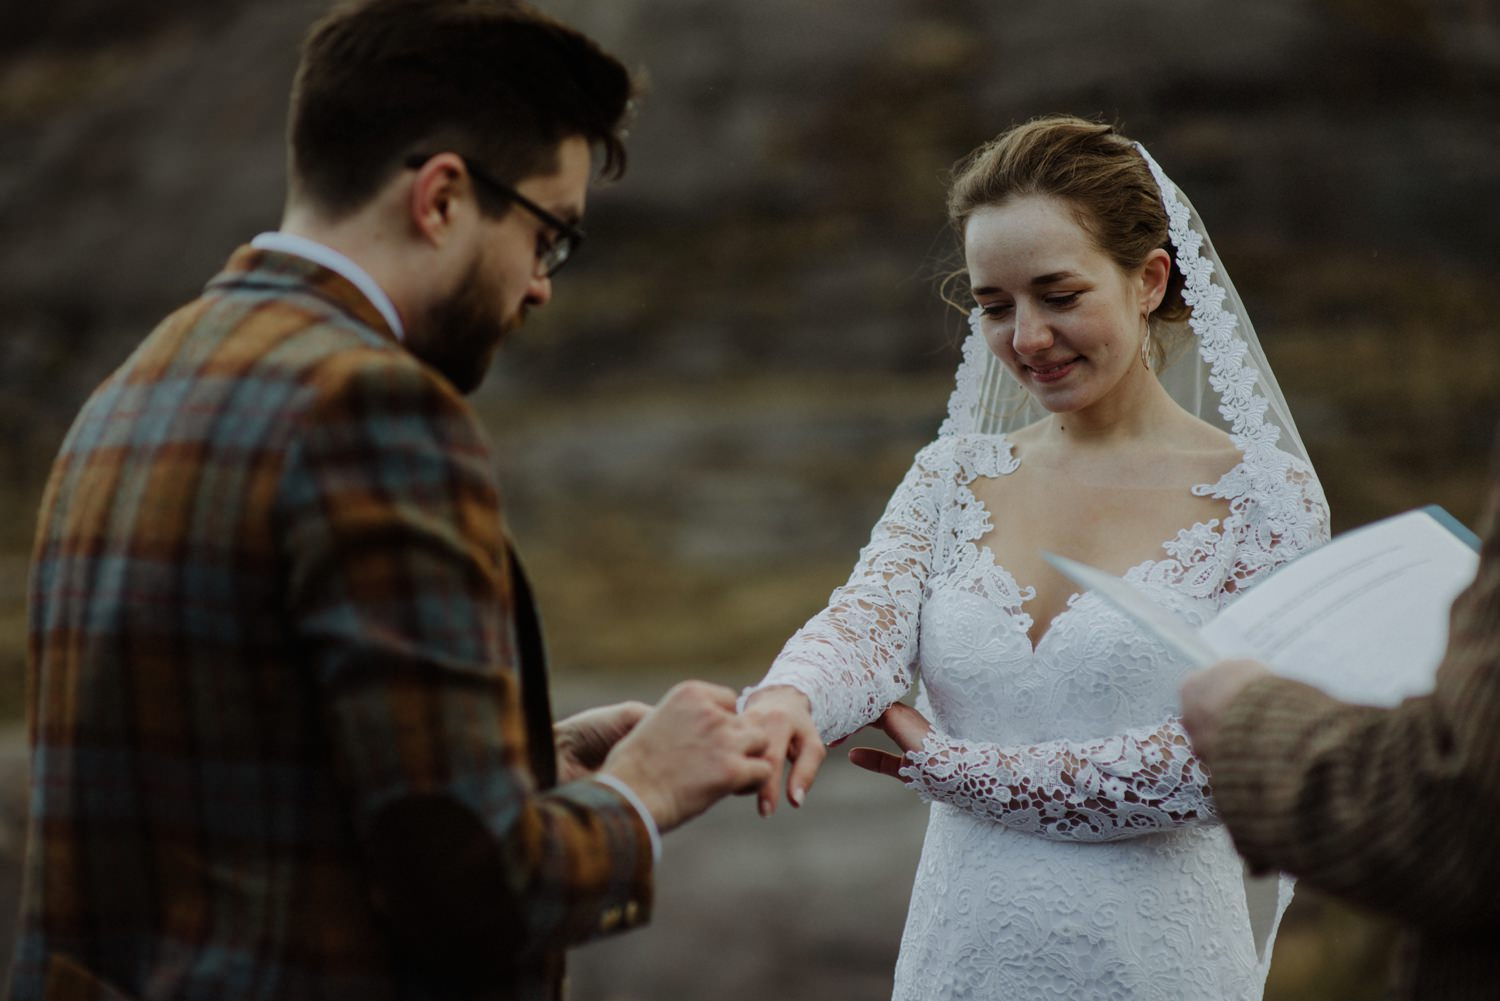 lsle of Skye elopement photographer_0440